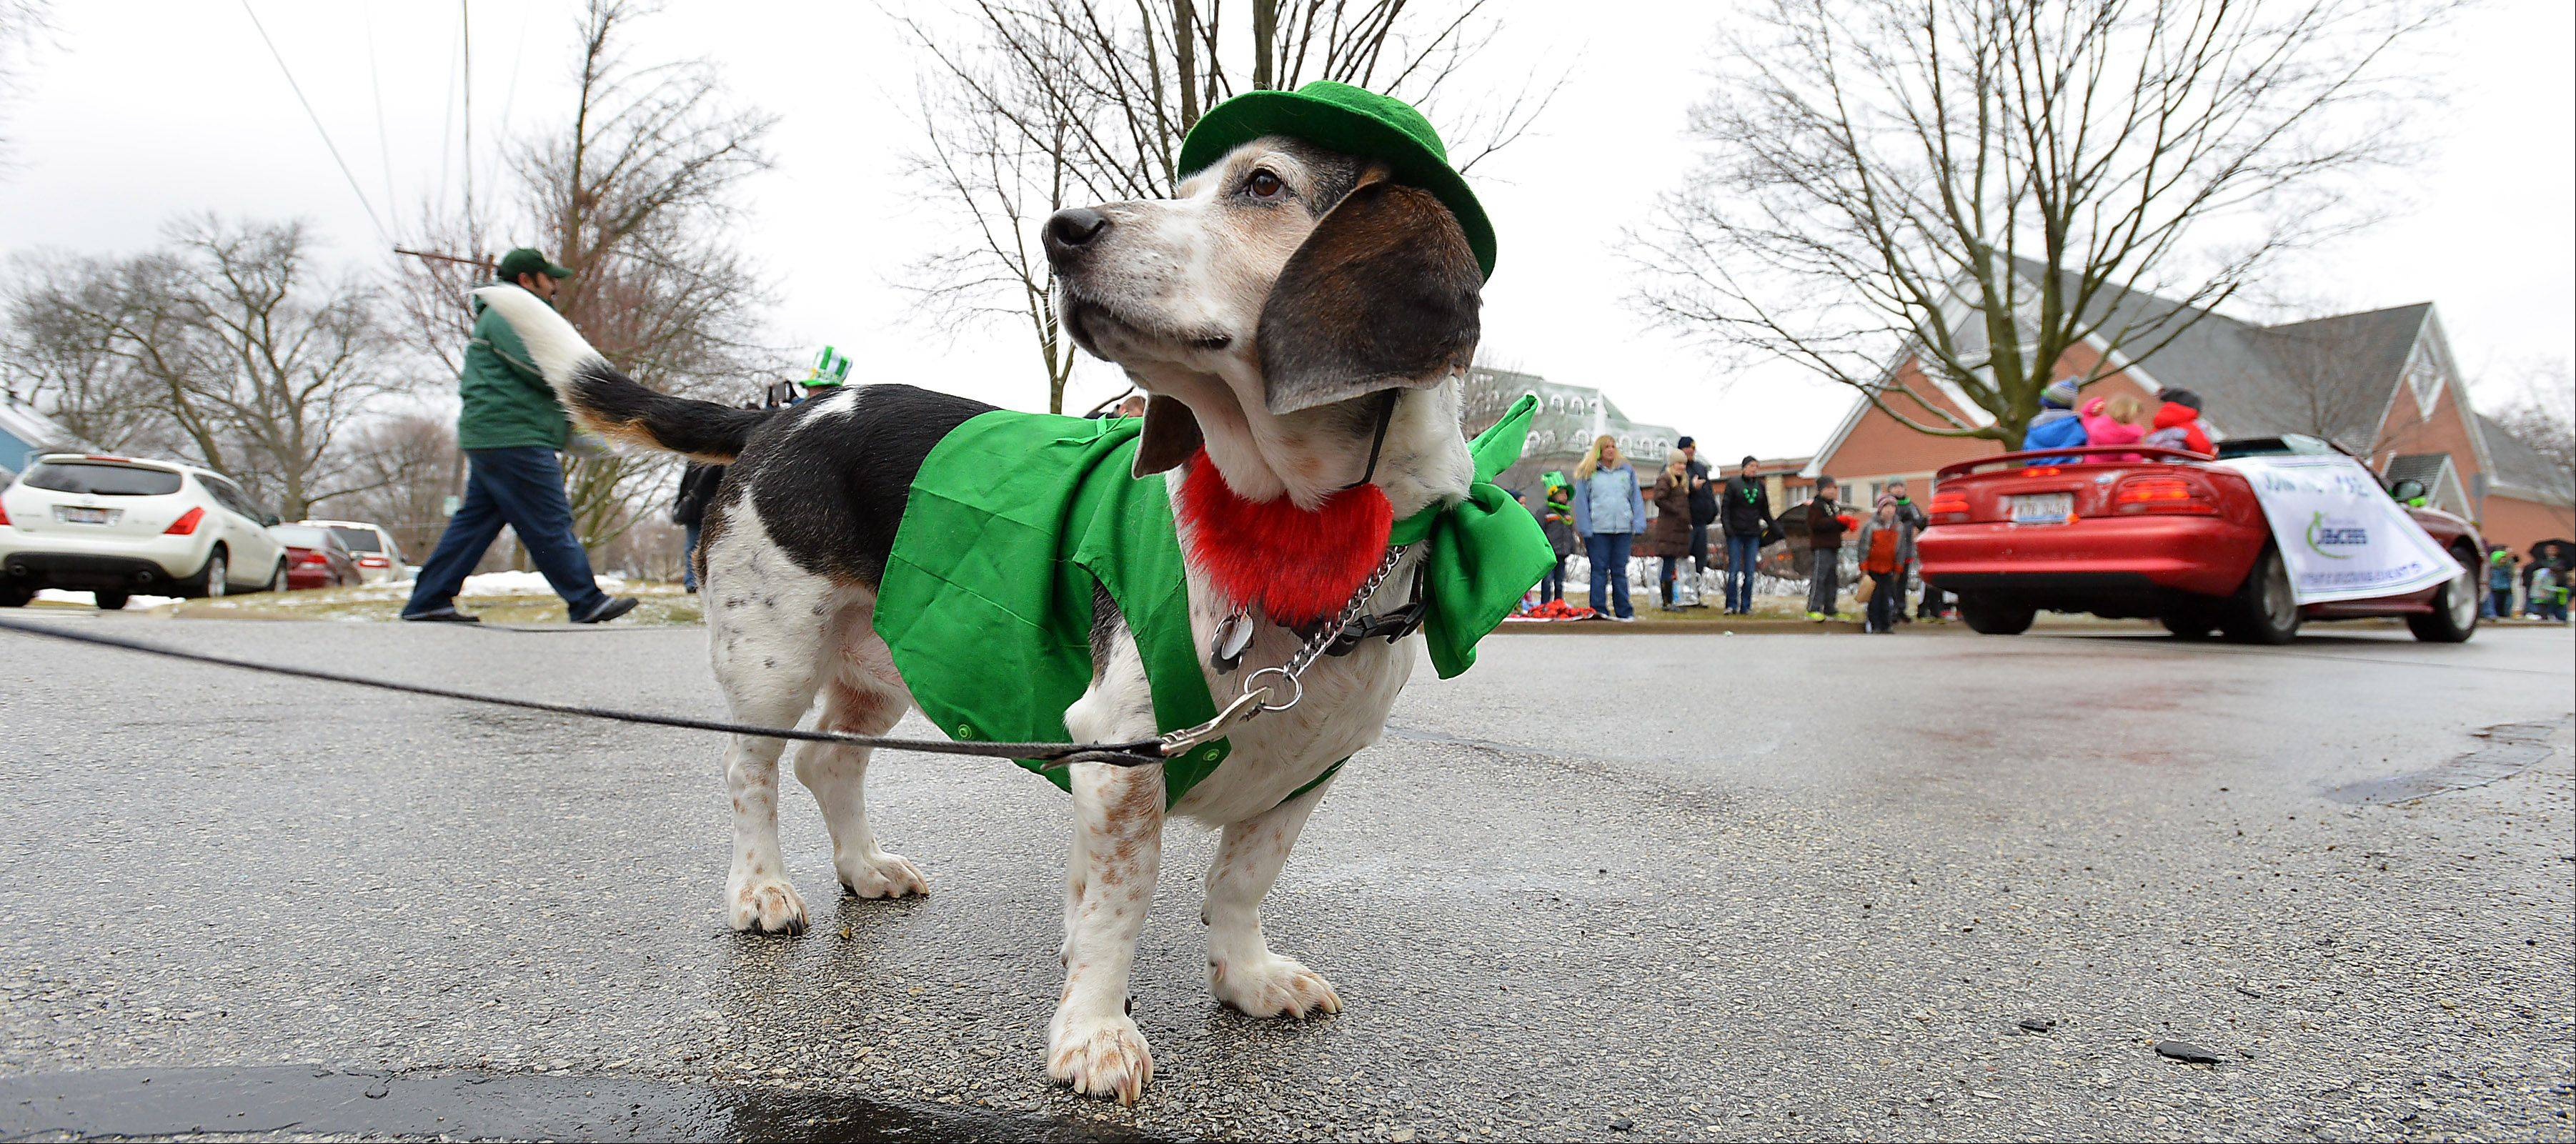 Murphy the dog tries his doggone best to enjoy the Palatine St. Patrick's Day parade despite the cold and snow showers Saturday.